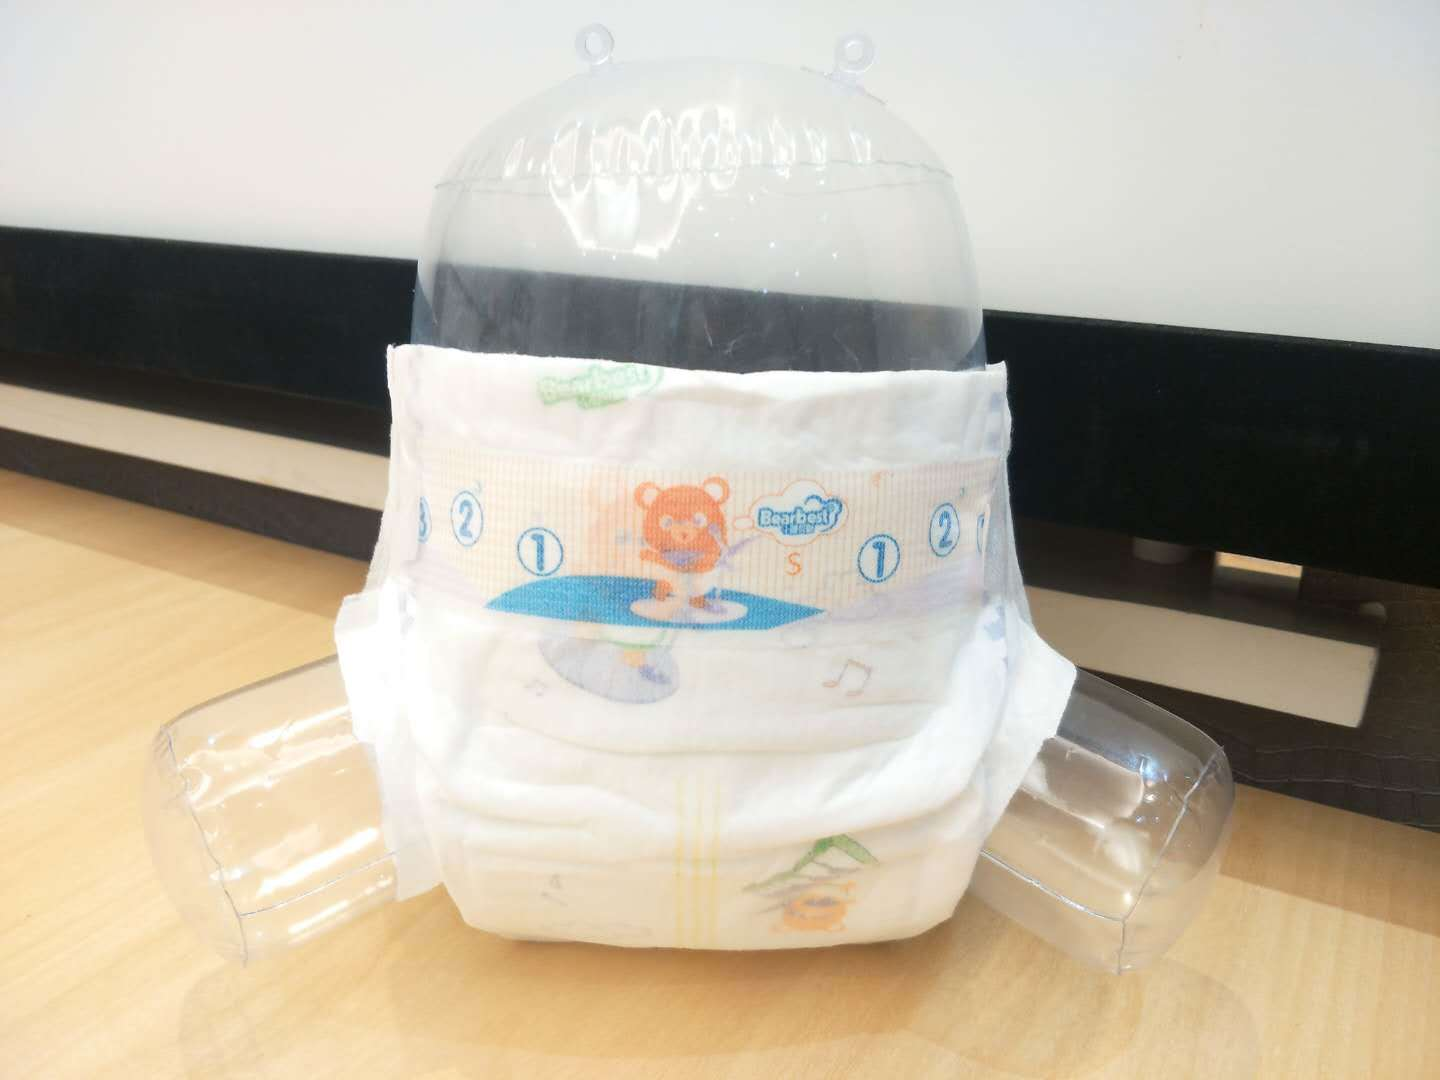 Super dry baby deep sleeping diaper softcare baby-dry diaper manufacture NDBD-4-Niceday